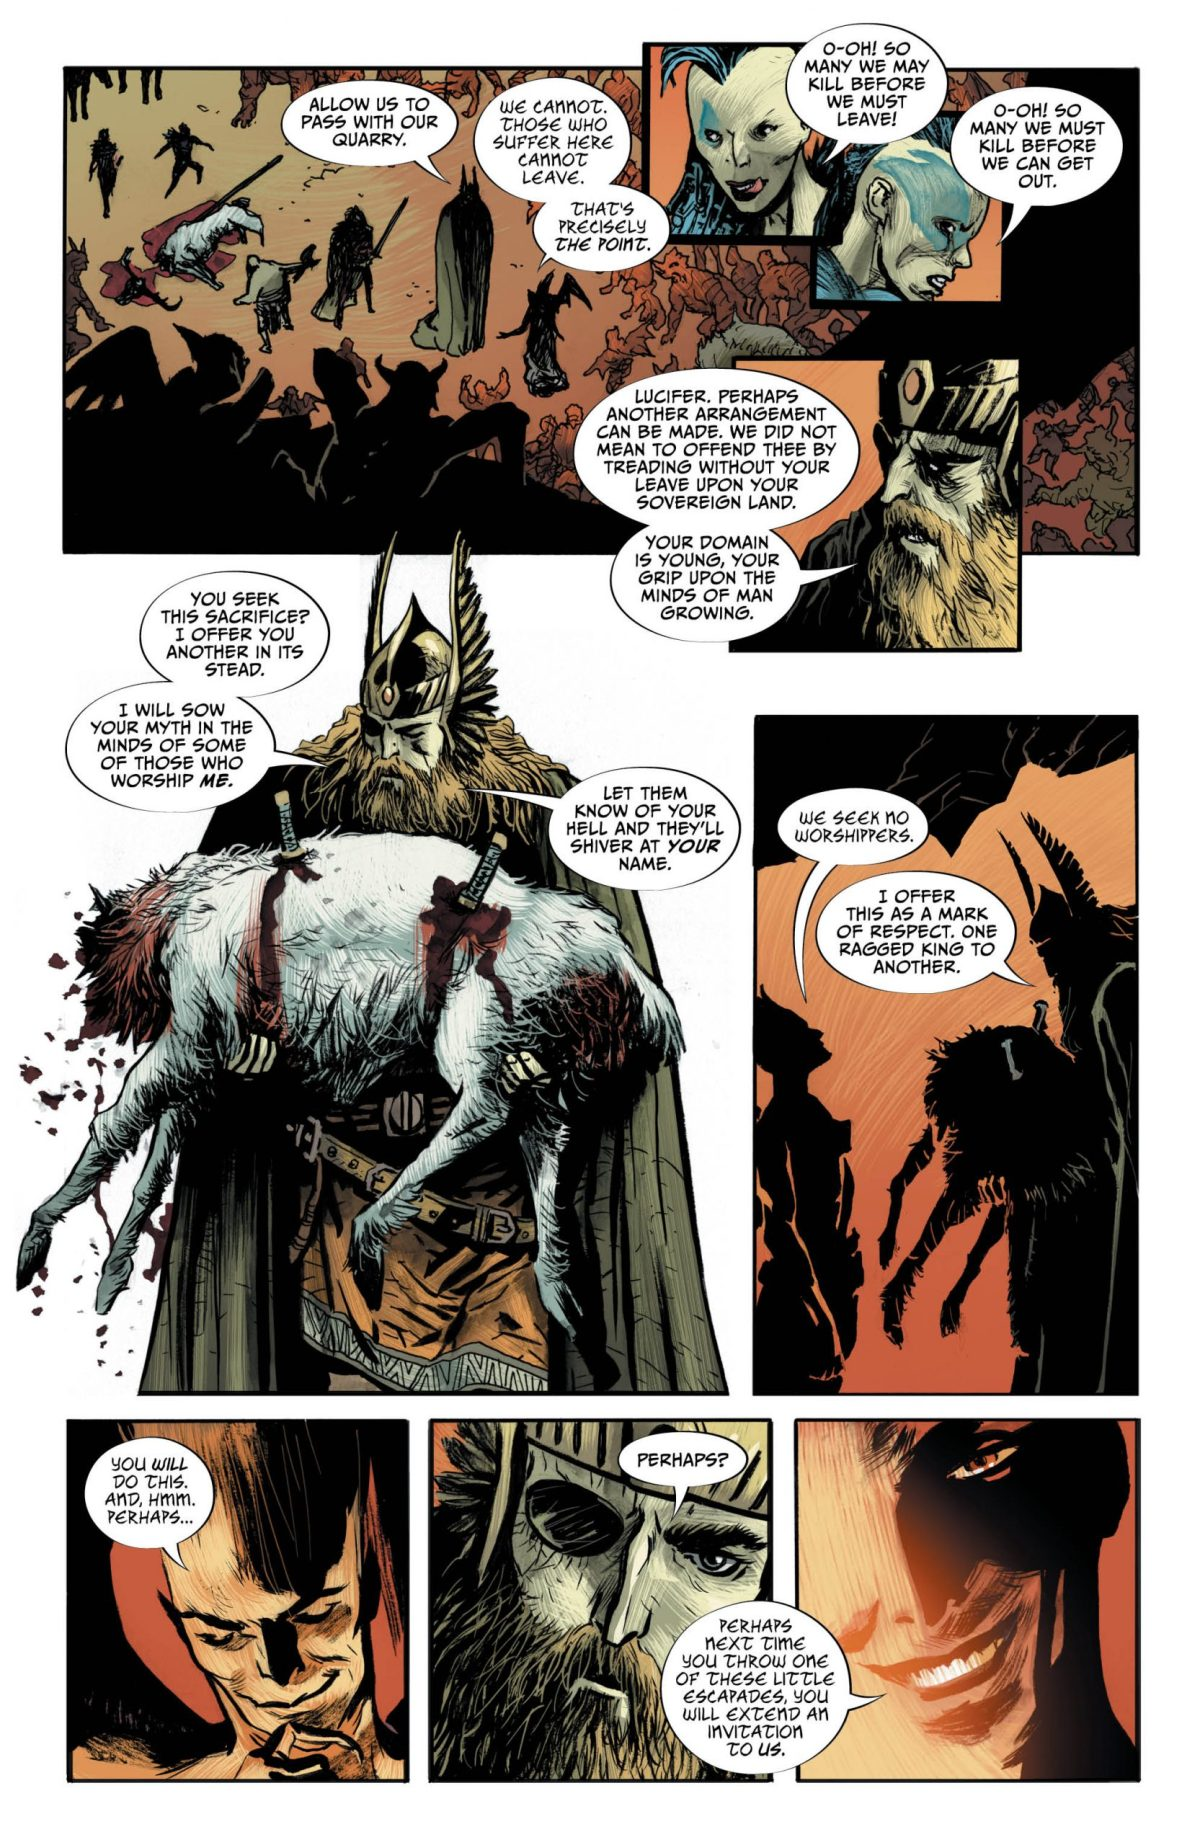 Lucifer #18, Page #5: Lucifer meets Odin for the first time